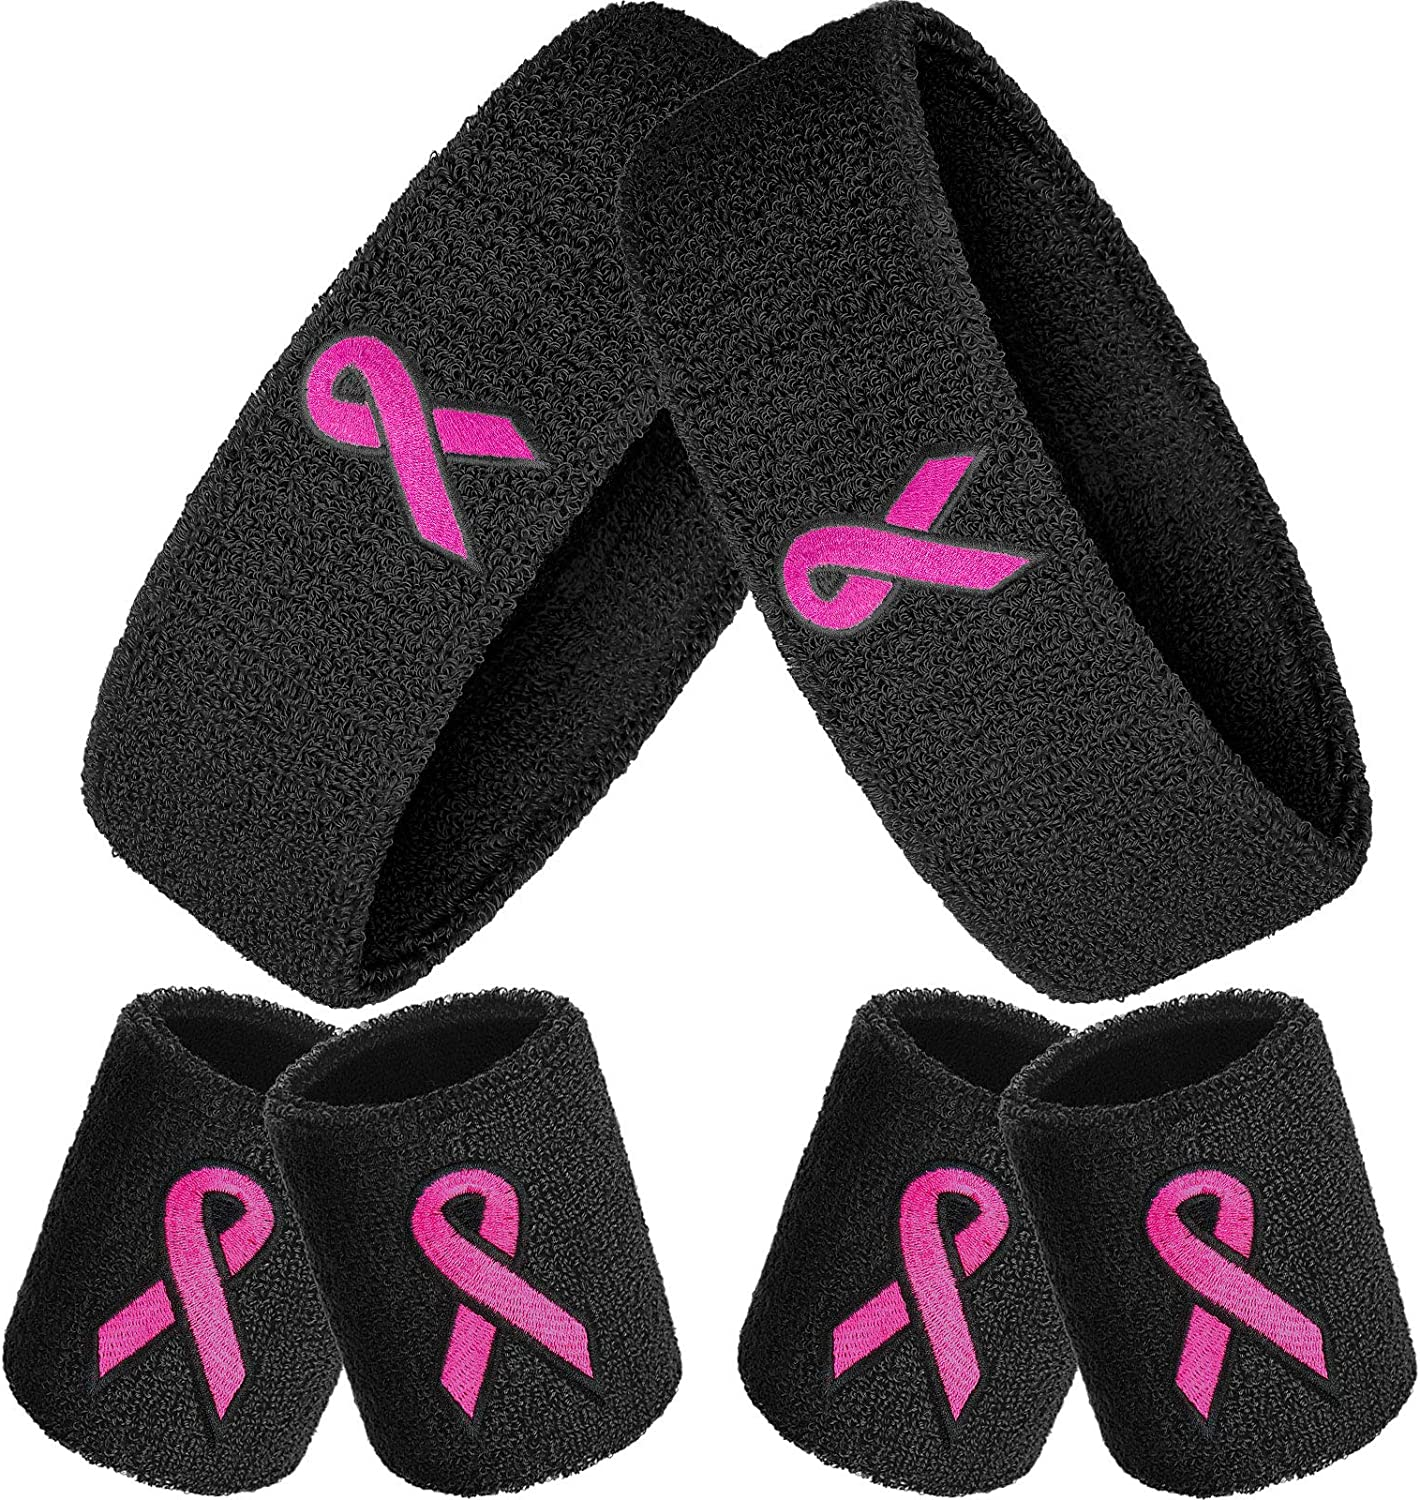 WILLBOND 6 Pieces Breast Cancer Awareness Wristbands Pink Ribbon Sweatbands Sports Wrist Sweatbands for Football Basketball Running Athletic